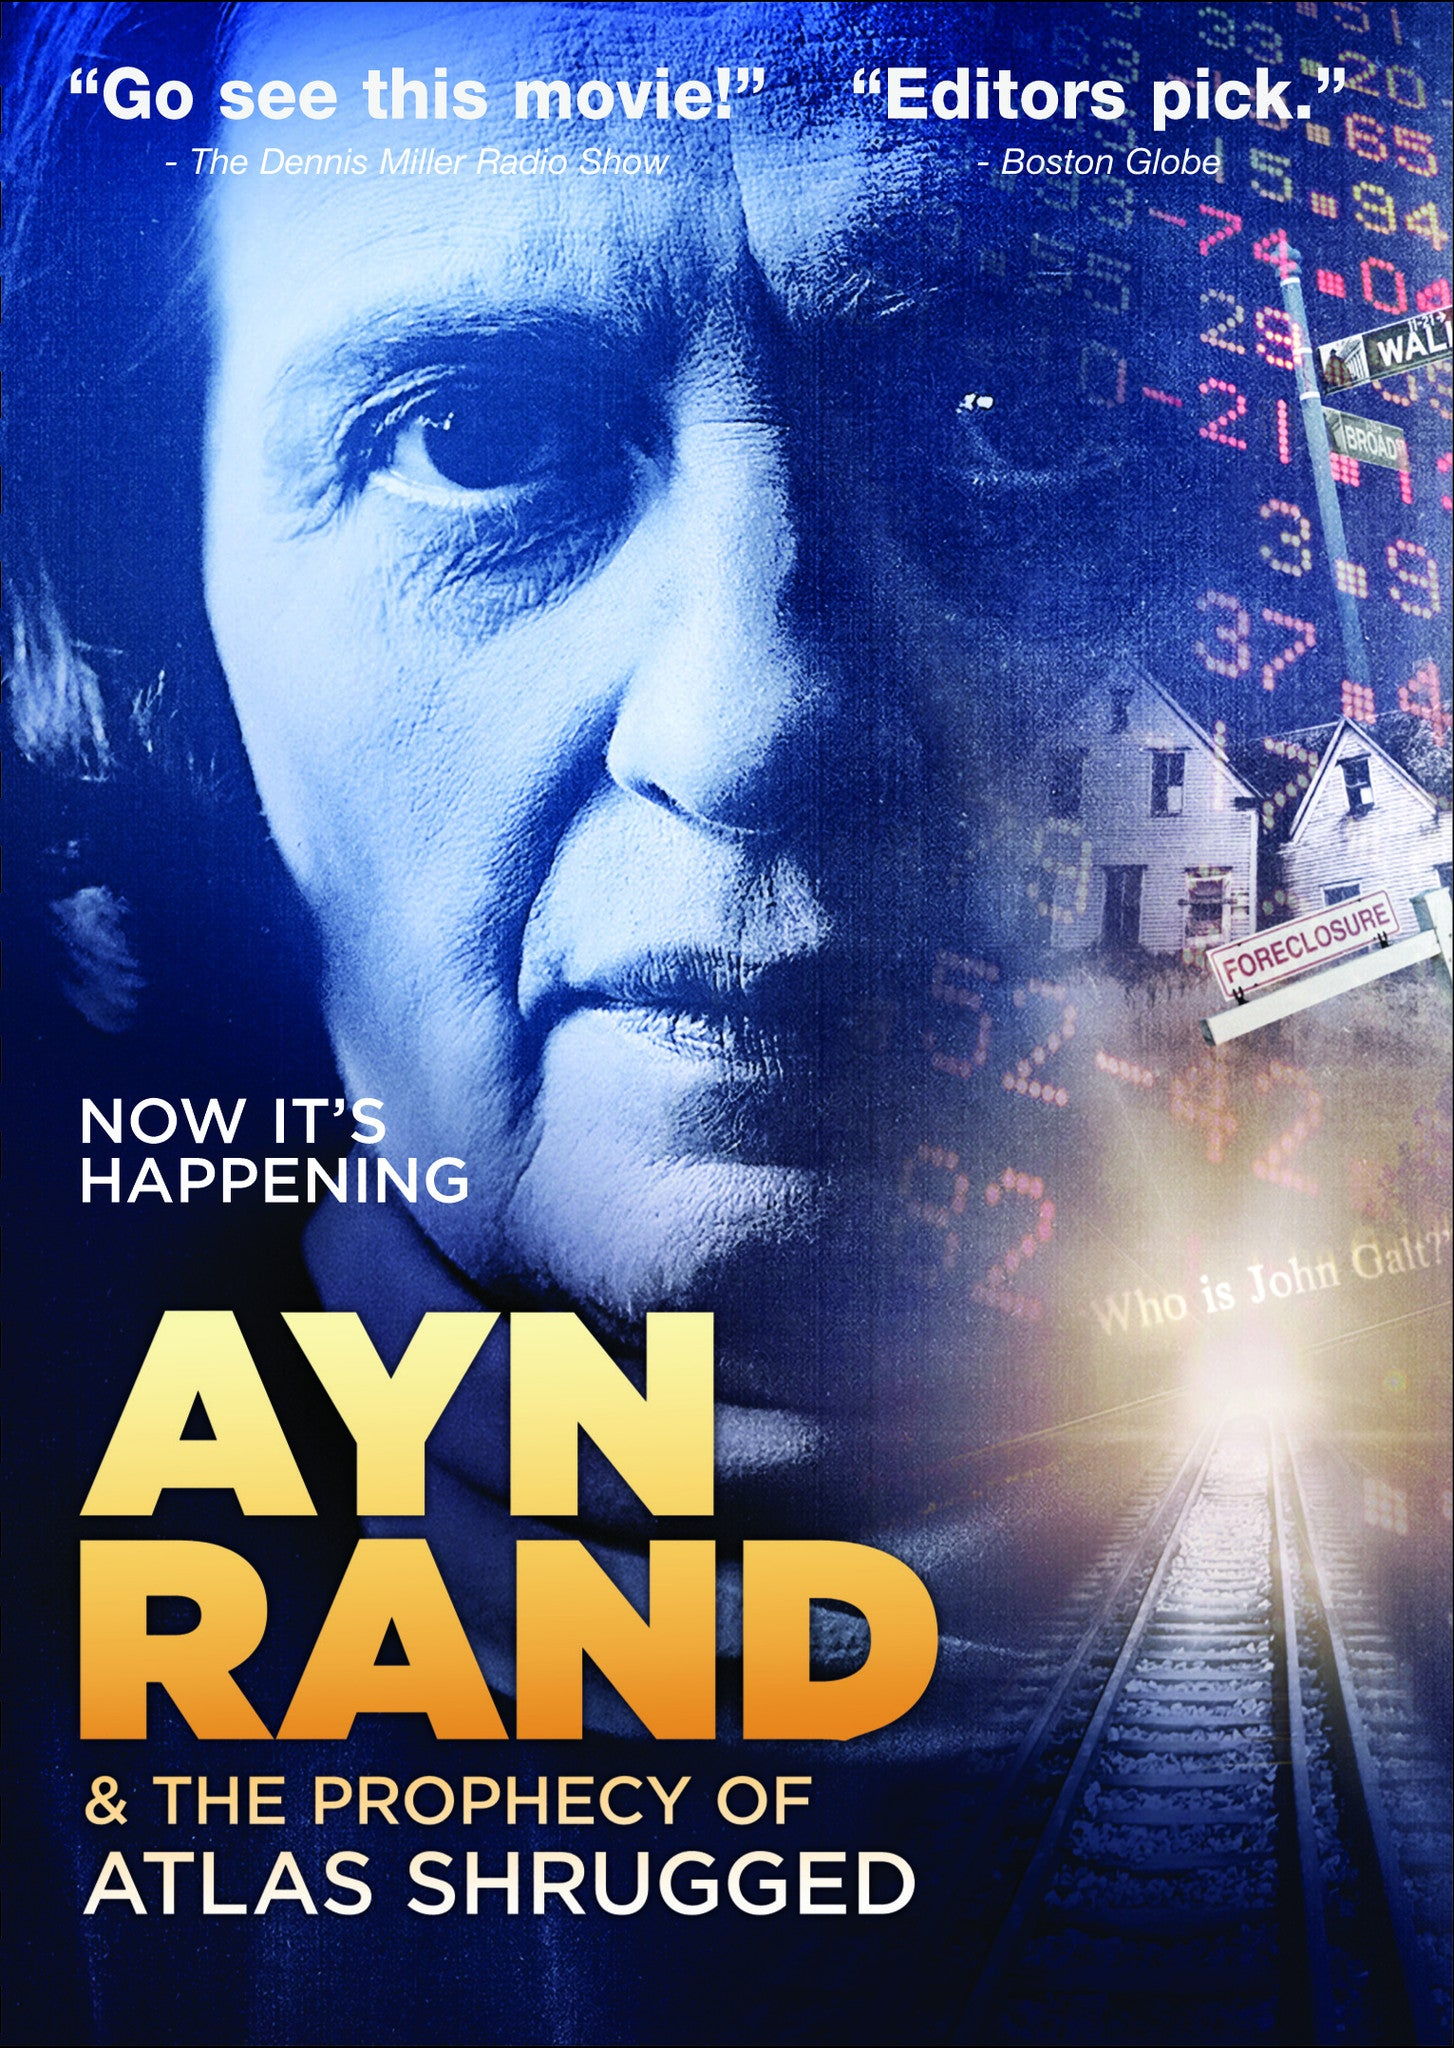 Ayn Rand and the Prophecy of Atlas Shrugged